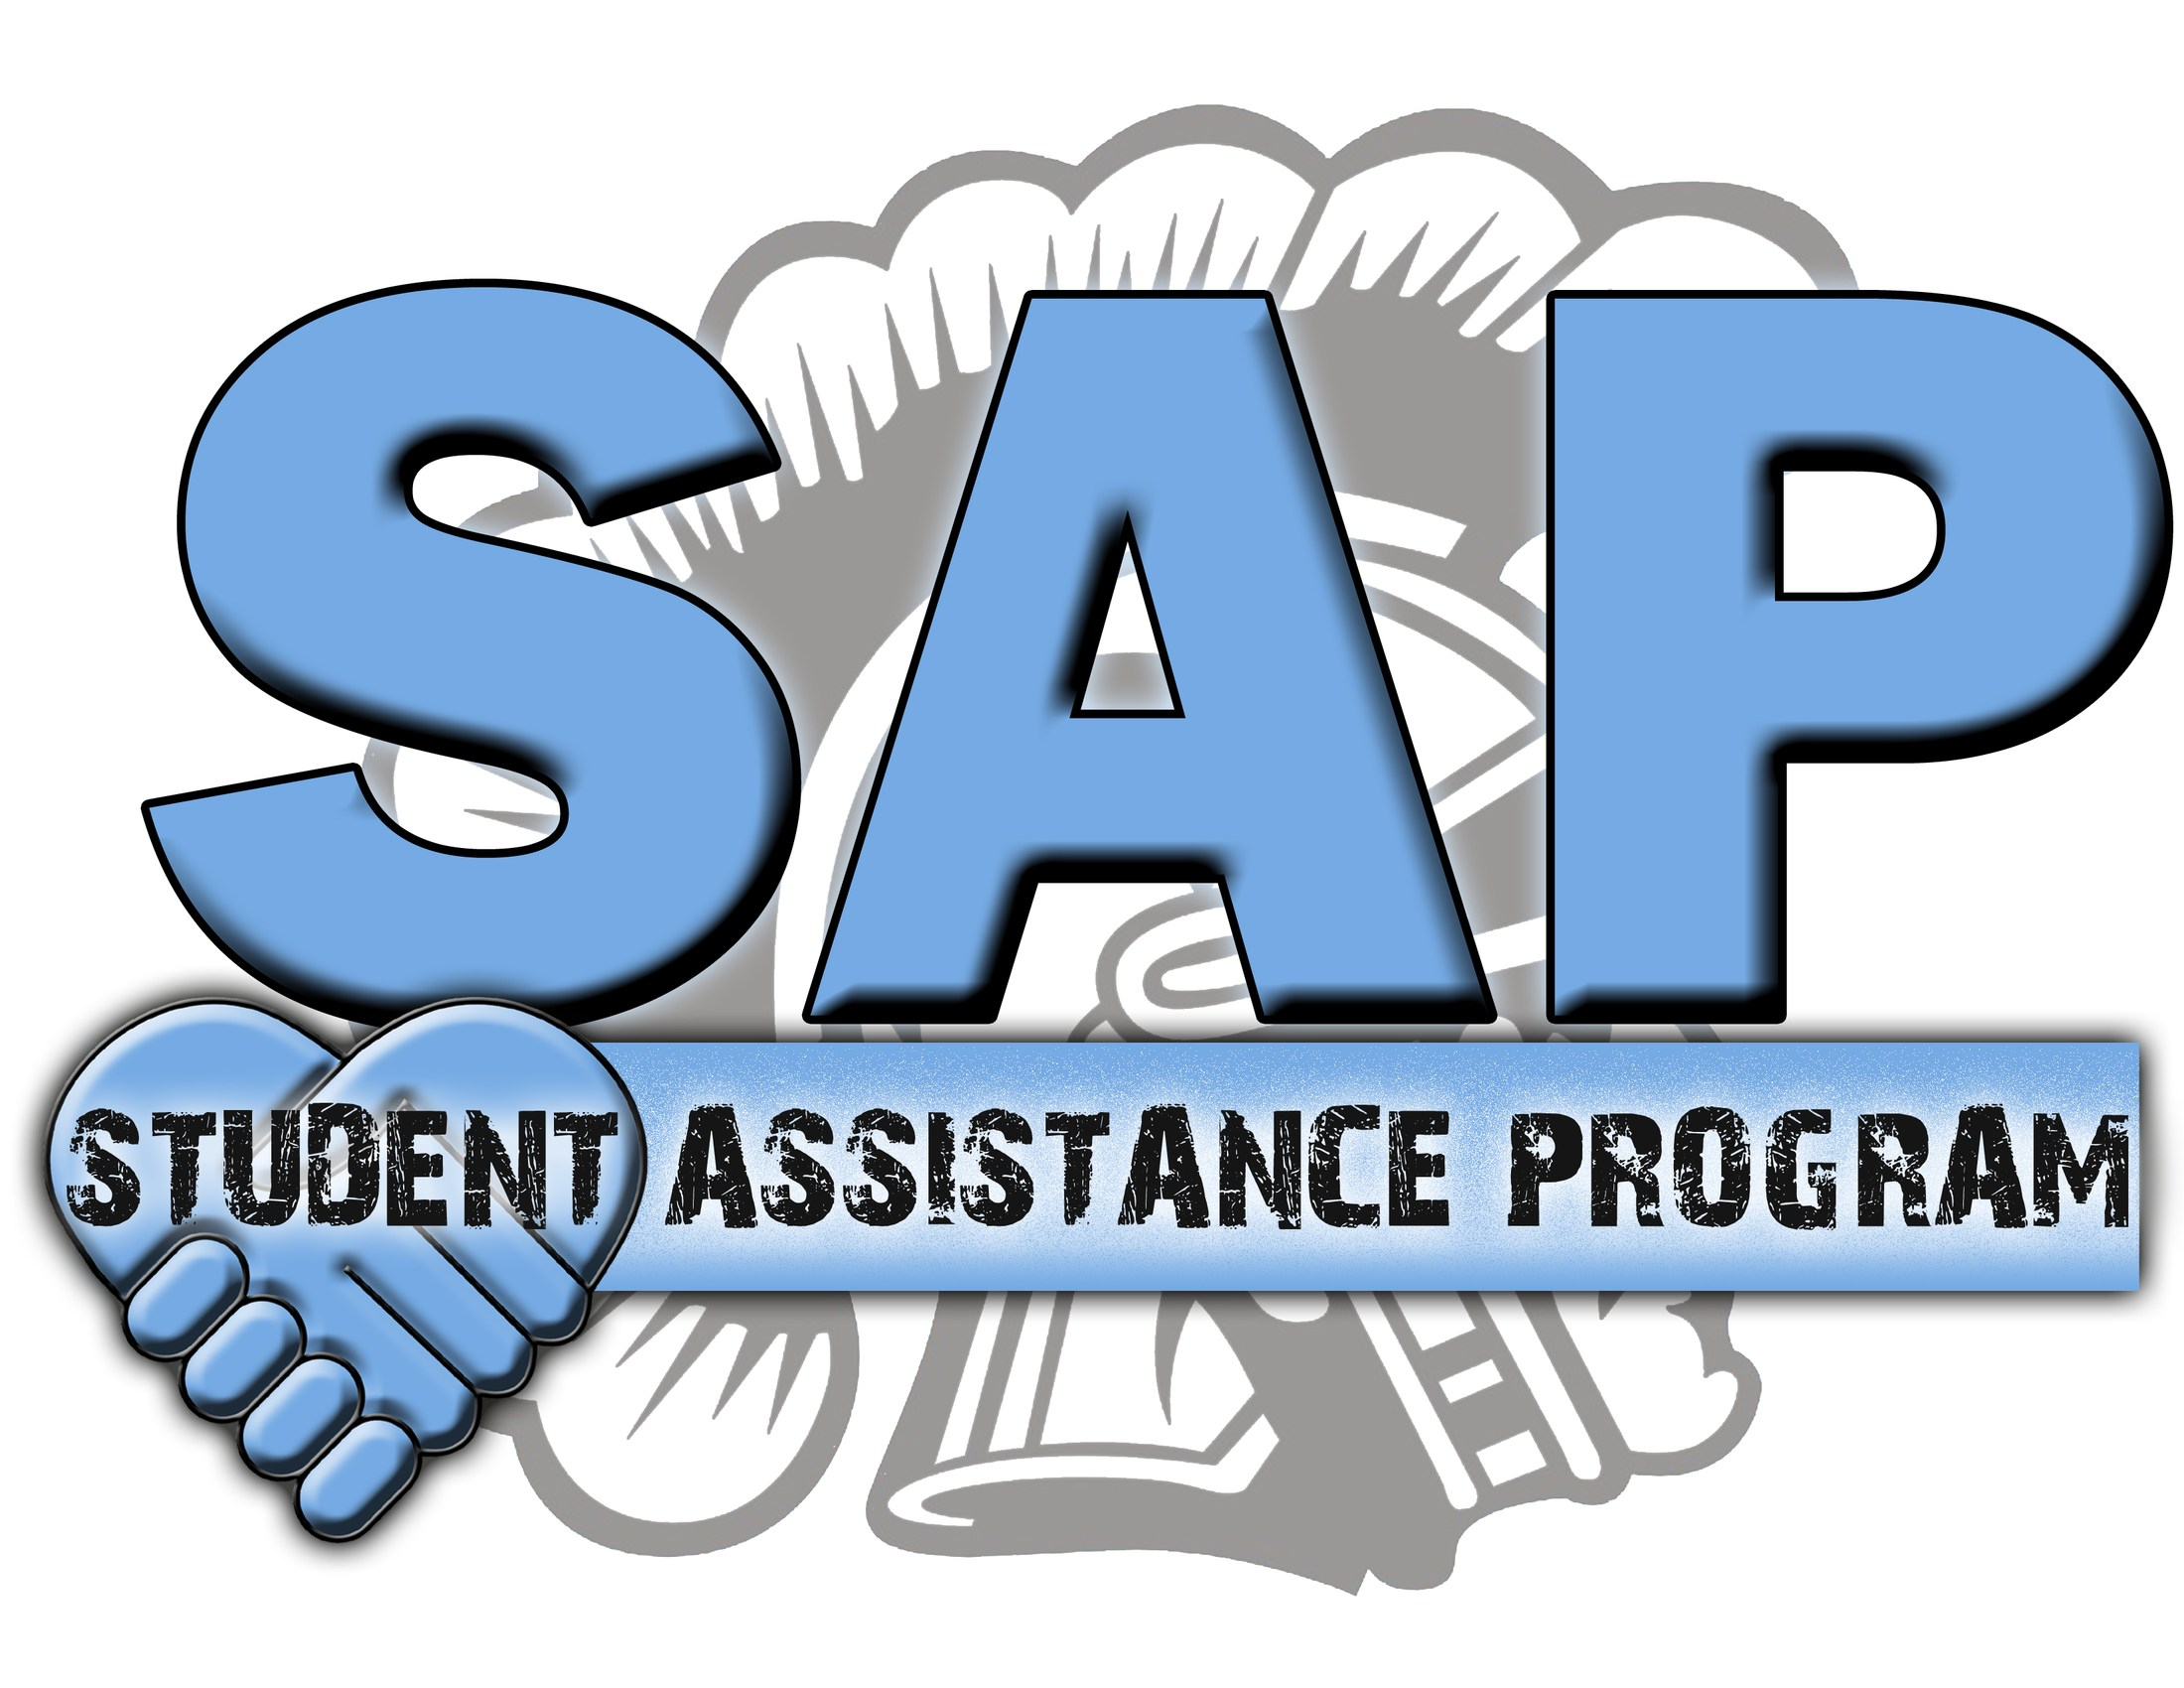 Student Assistance Program Graphic Logo